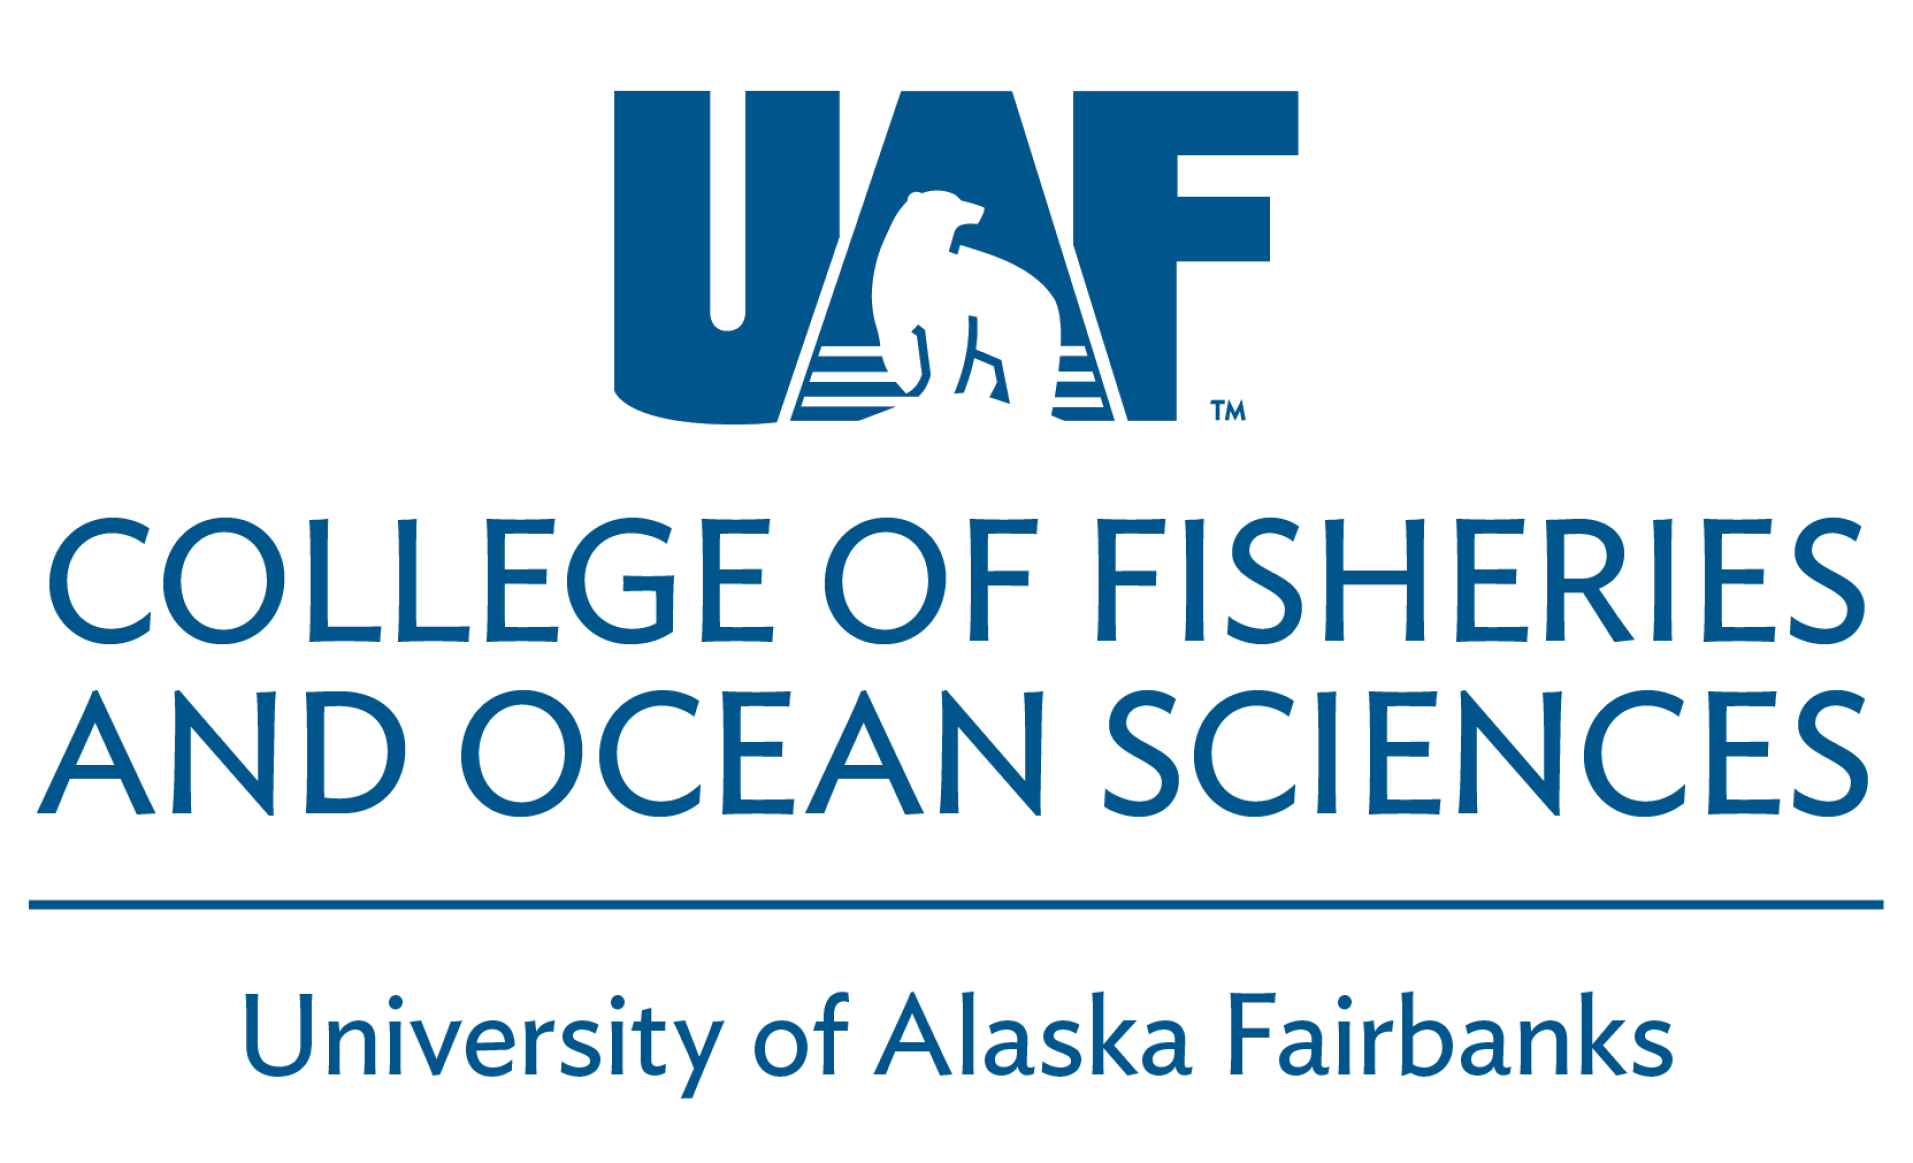 UAF College of Fisheries and Ocean Sciences